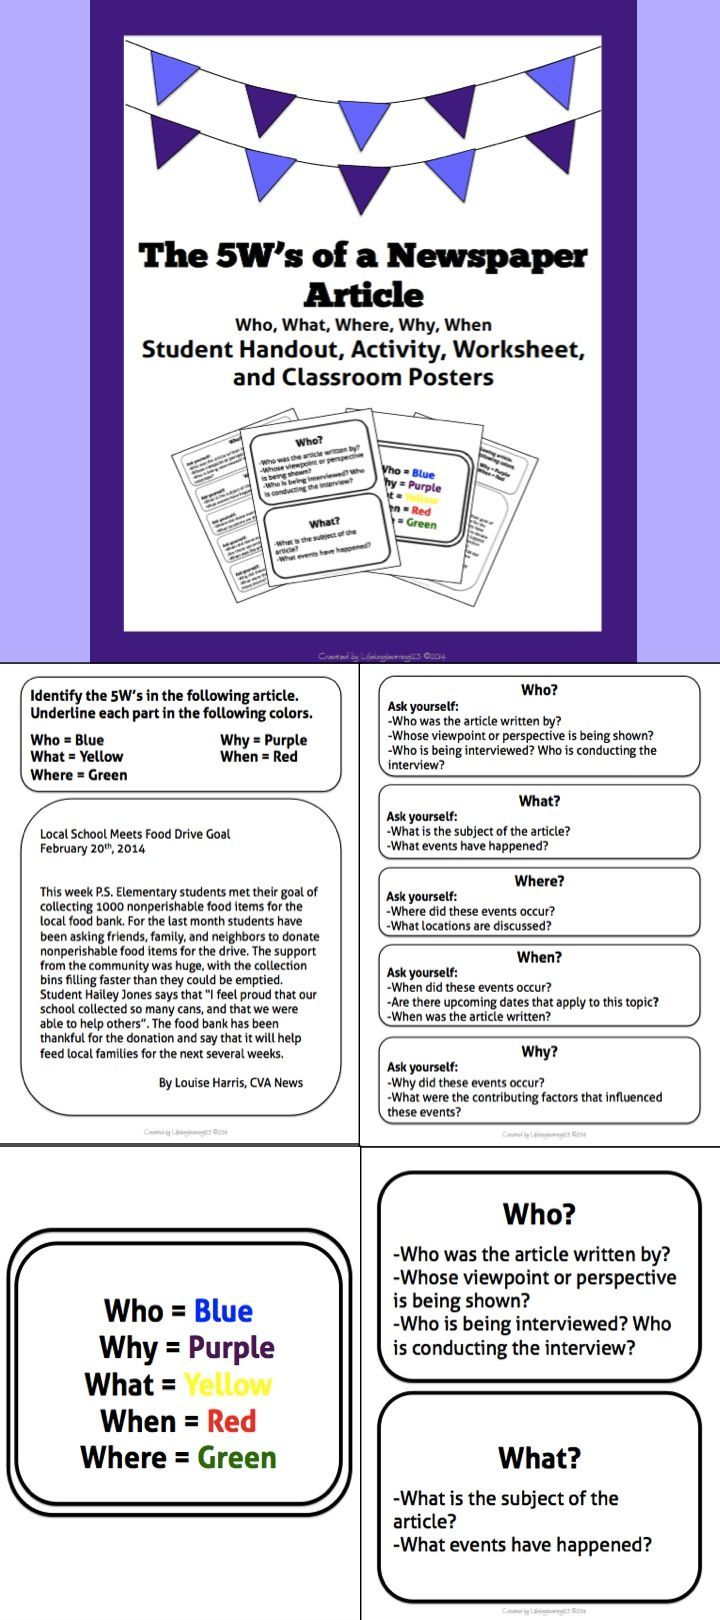 how to use newspaper articles in the classroom - Buscar con Google